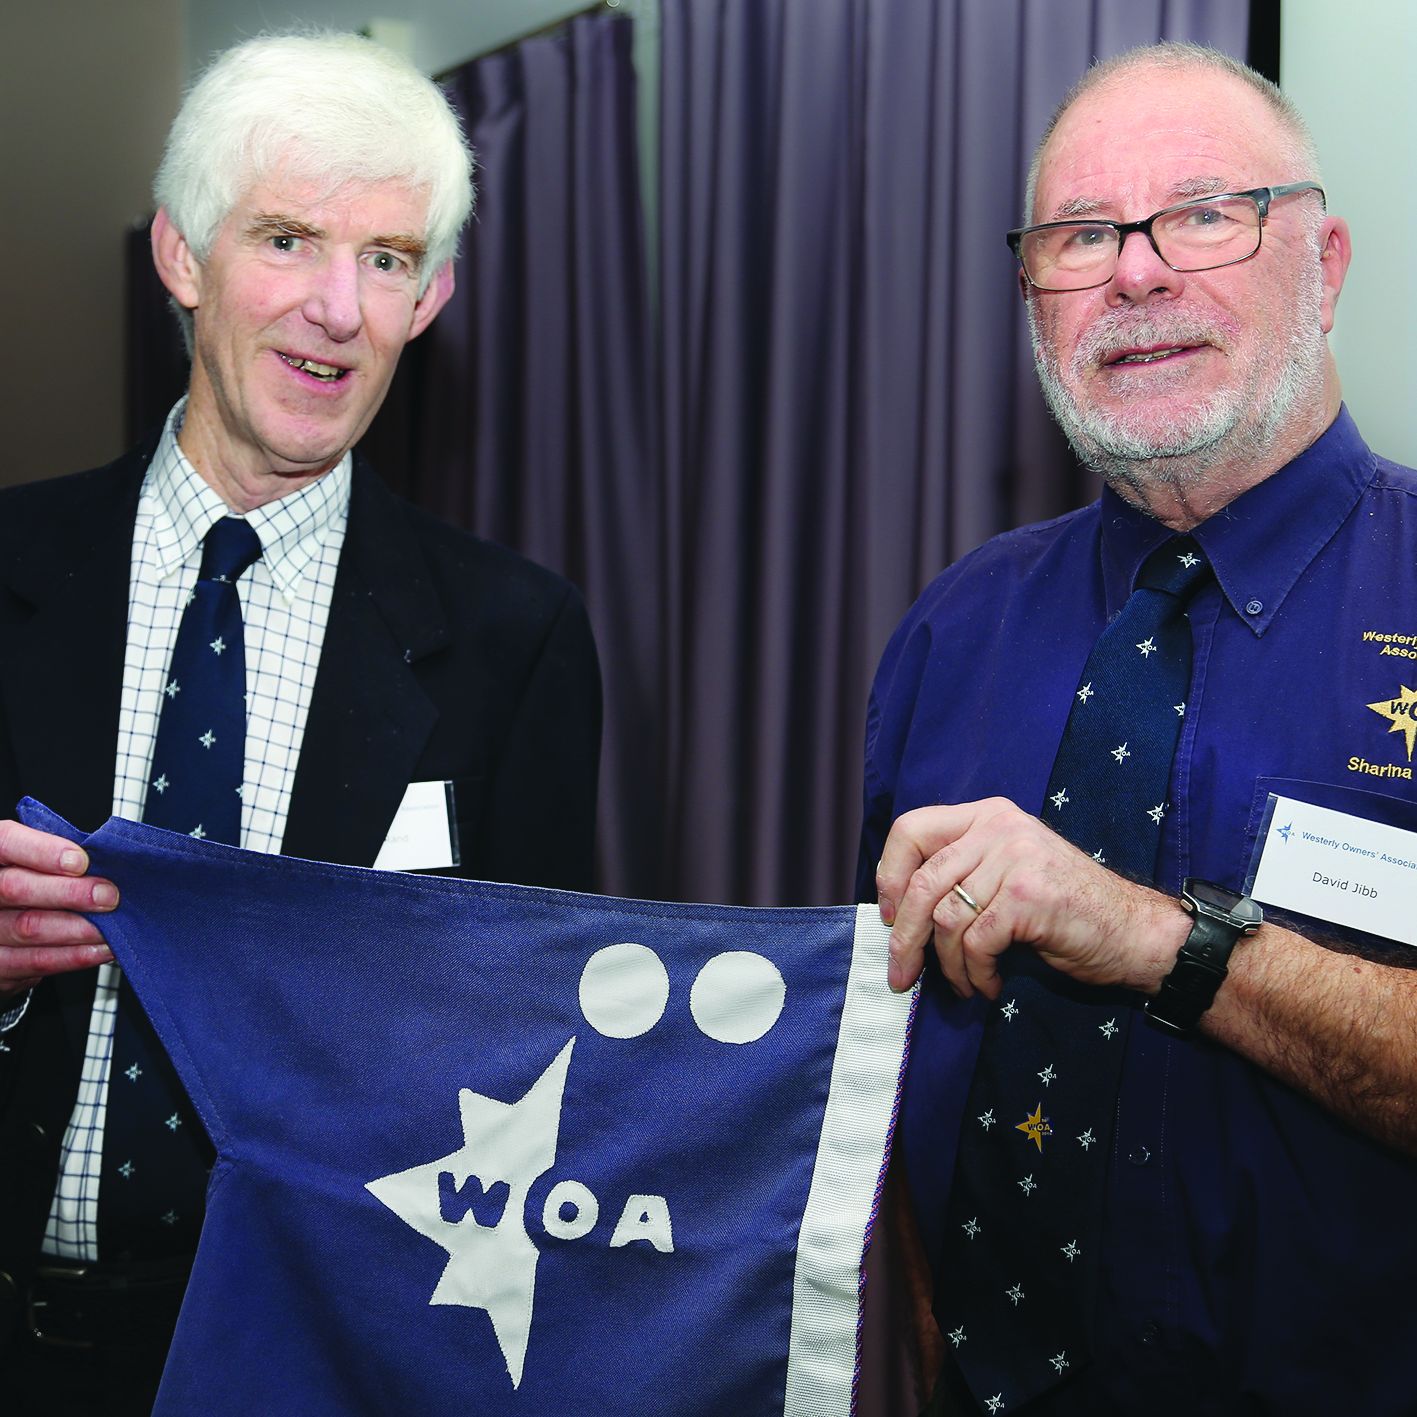 Alan Rand receives the Rear-Commodore's flag from the Vice-Commodore, David Jibb